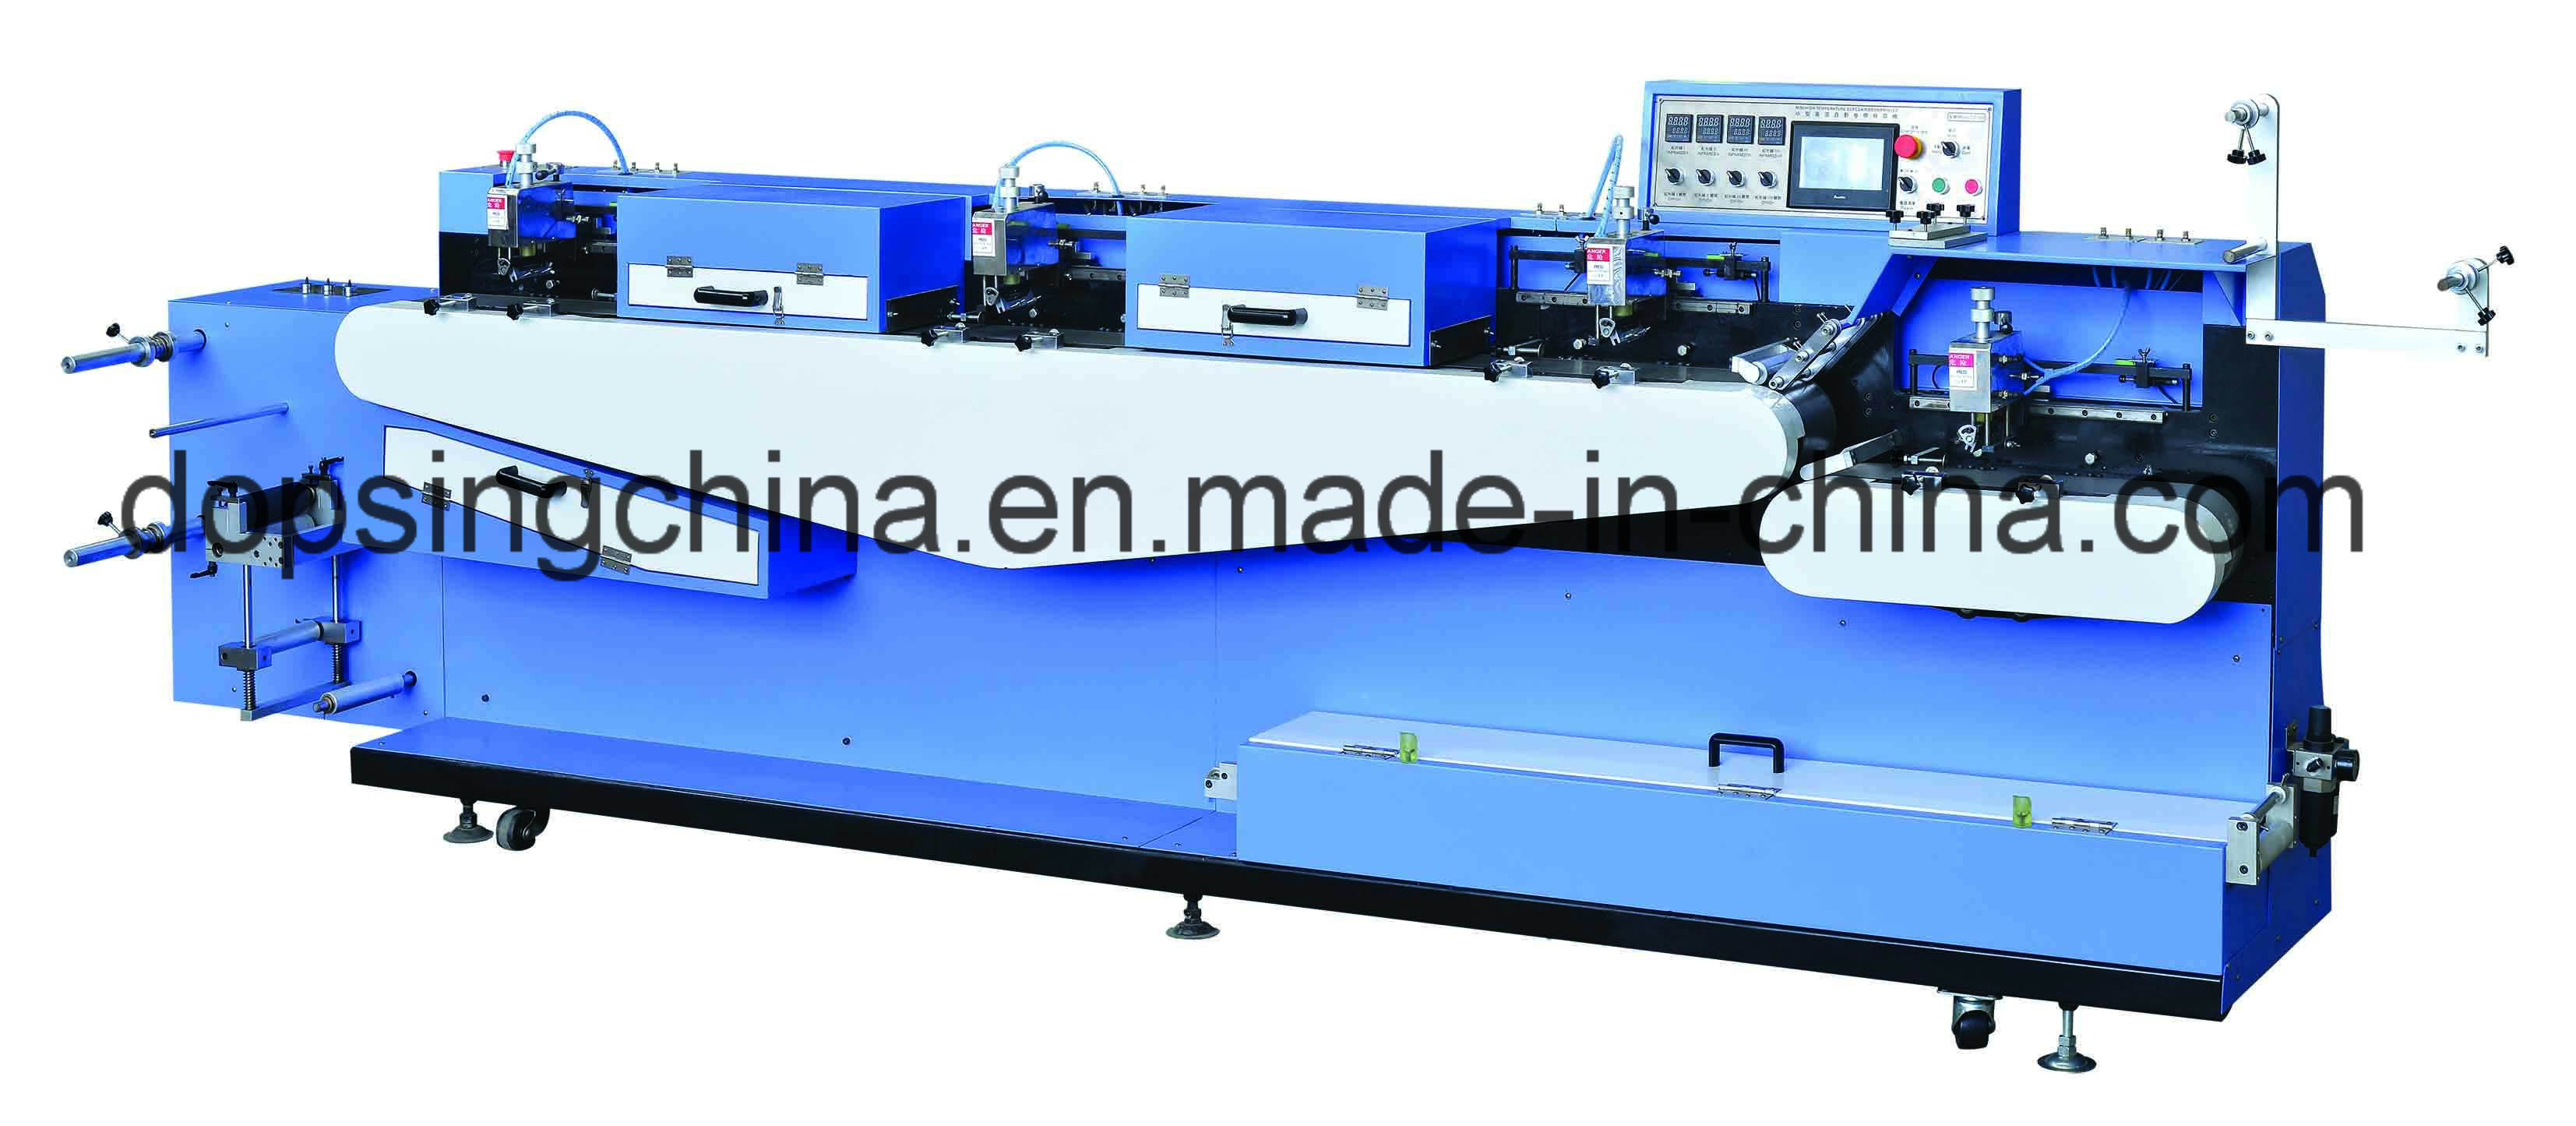 Manufacturer of Two Colors Woven Ribbons Silk Screen Printing Machine -